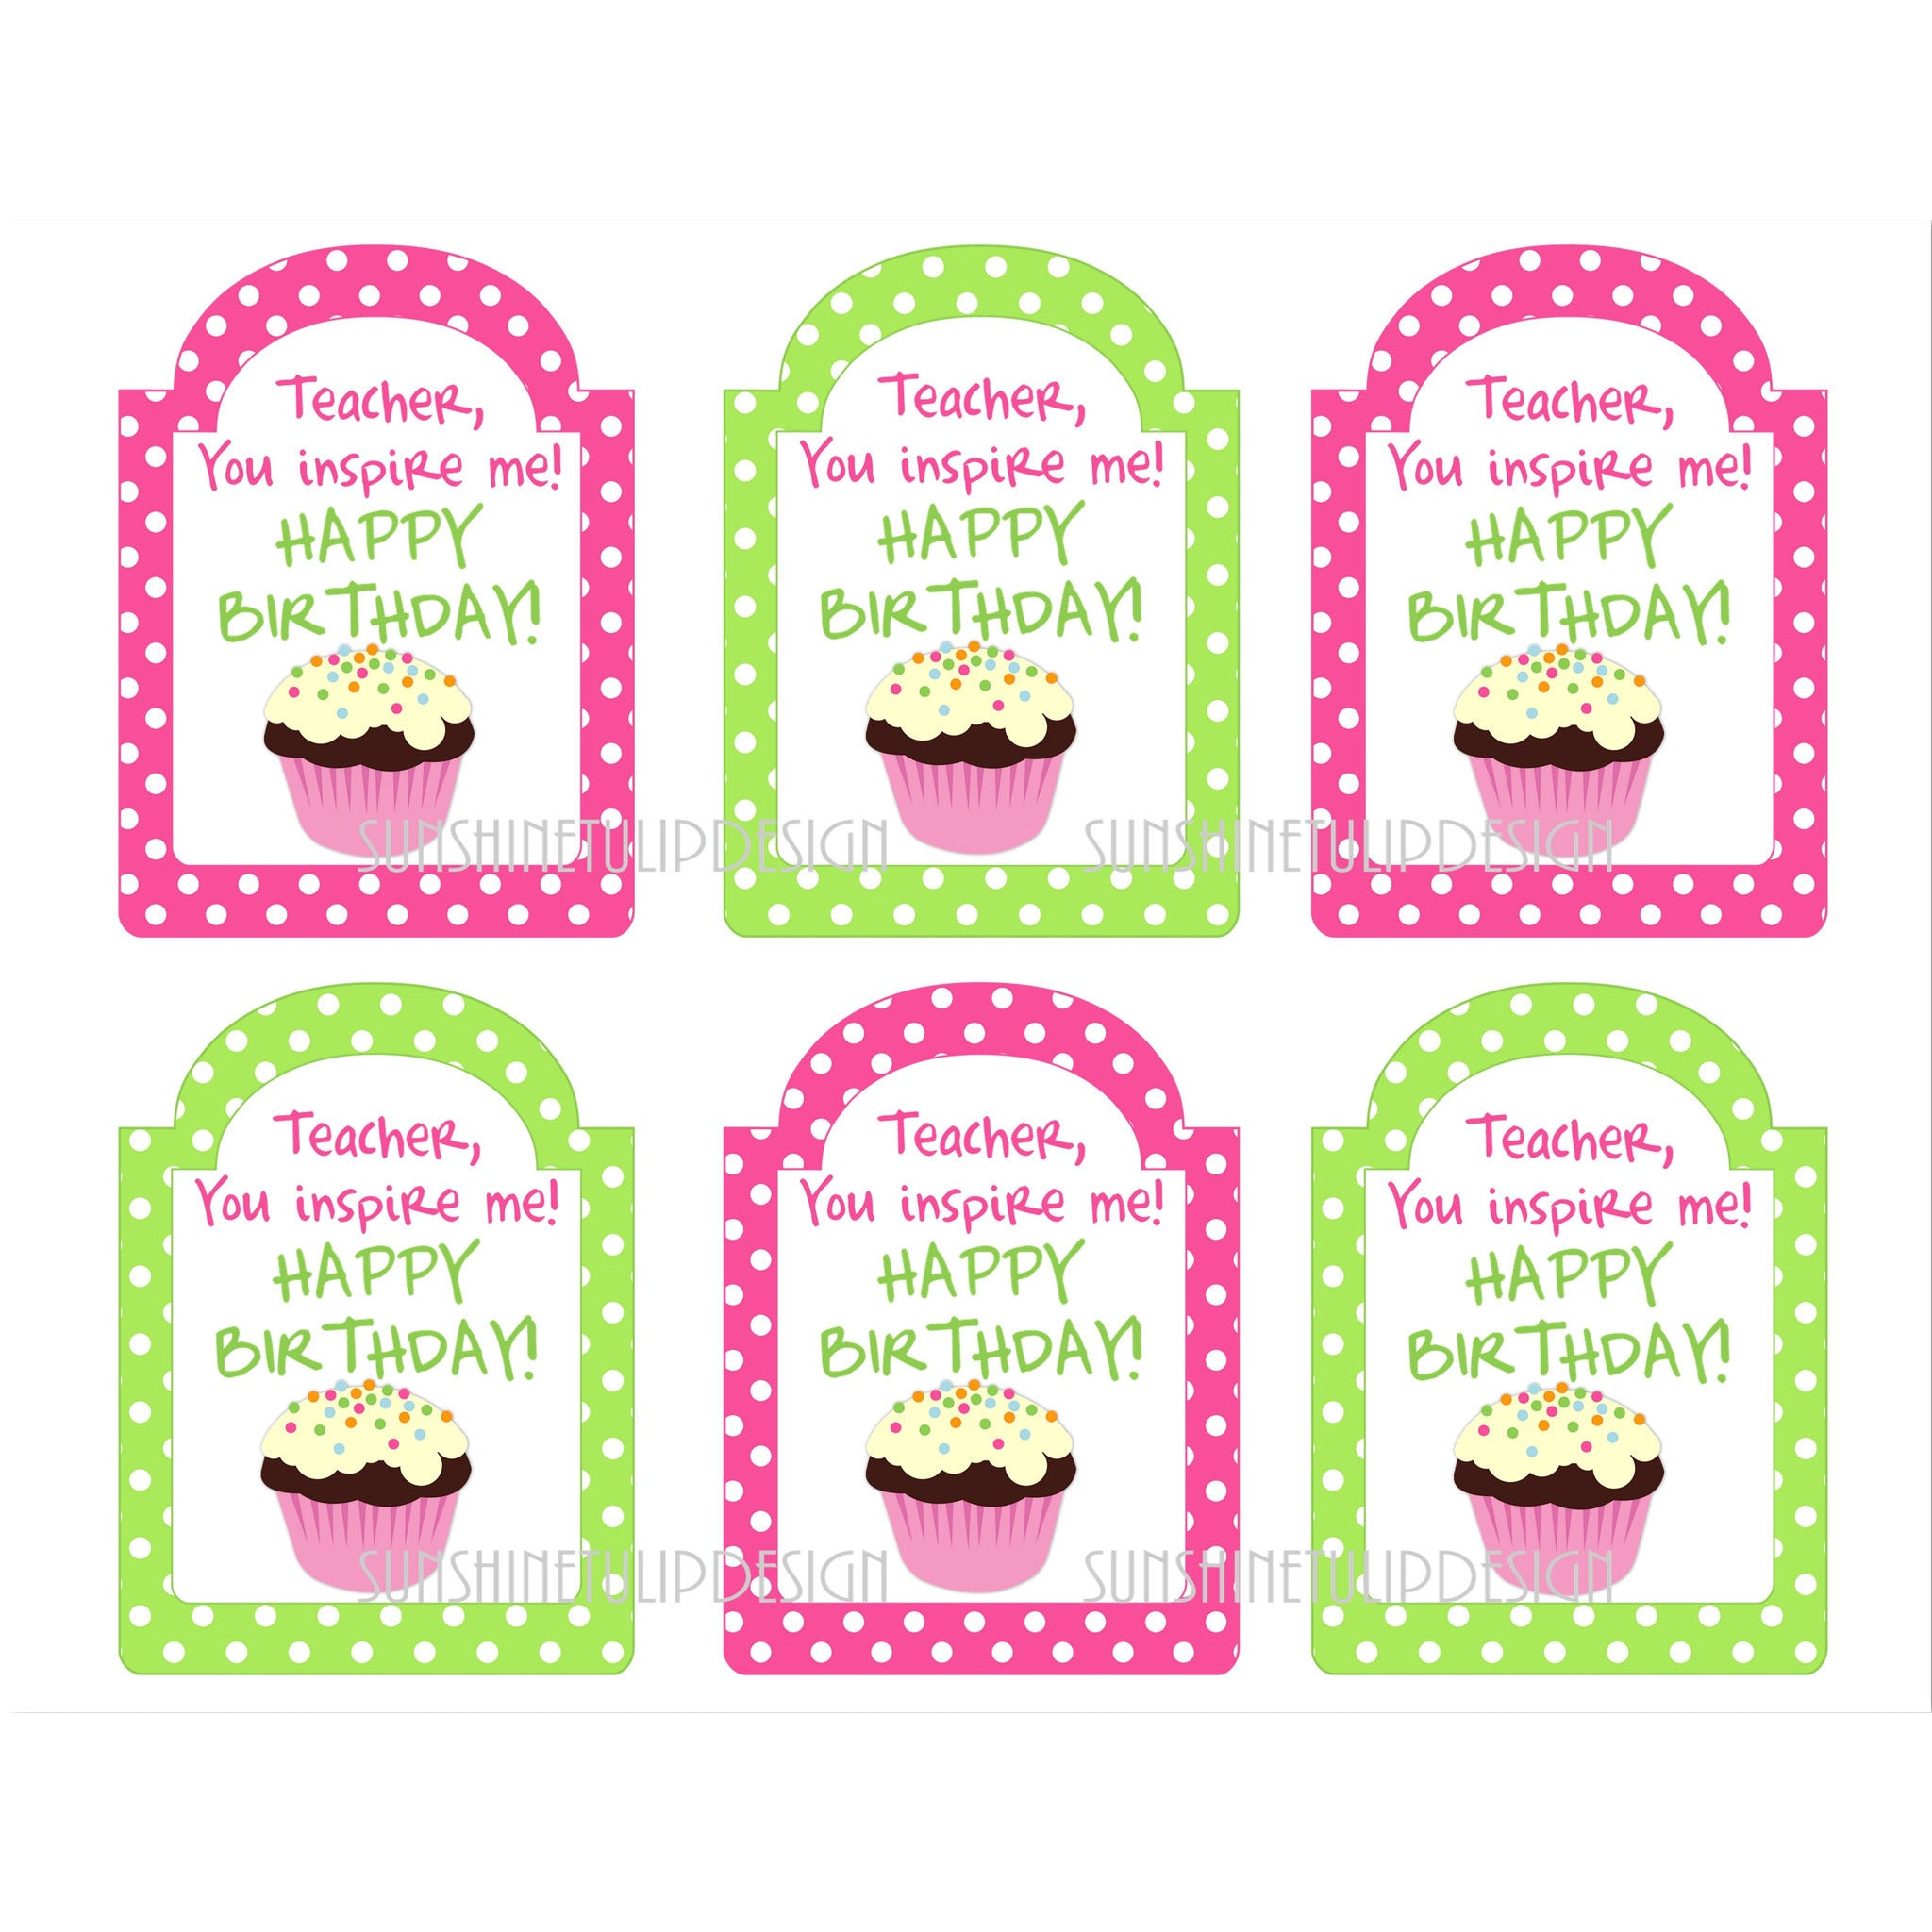 image regarding Birthday Tag Printable referred to as Printable Trainer Birthday Present Tags, Joyful Birthday Printable Trainer Tags through SUNSHINETULIPDESIGN